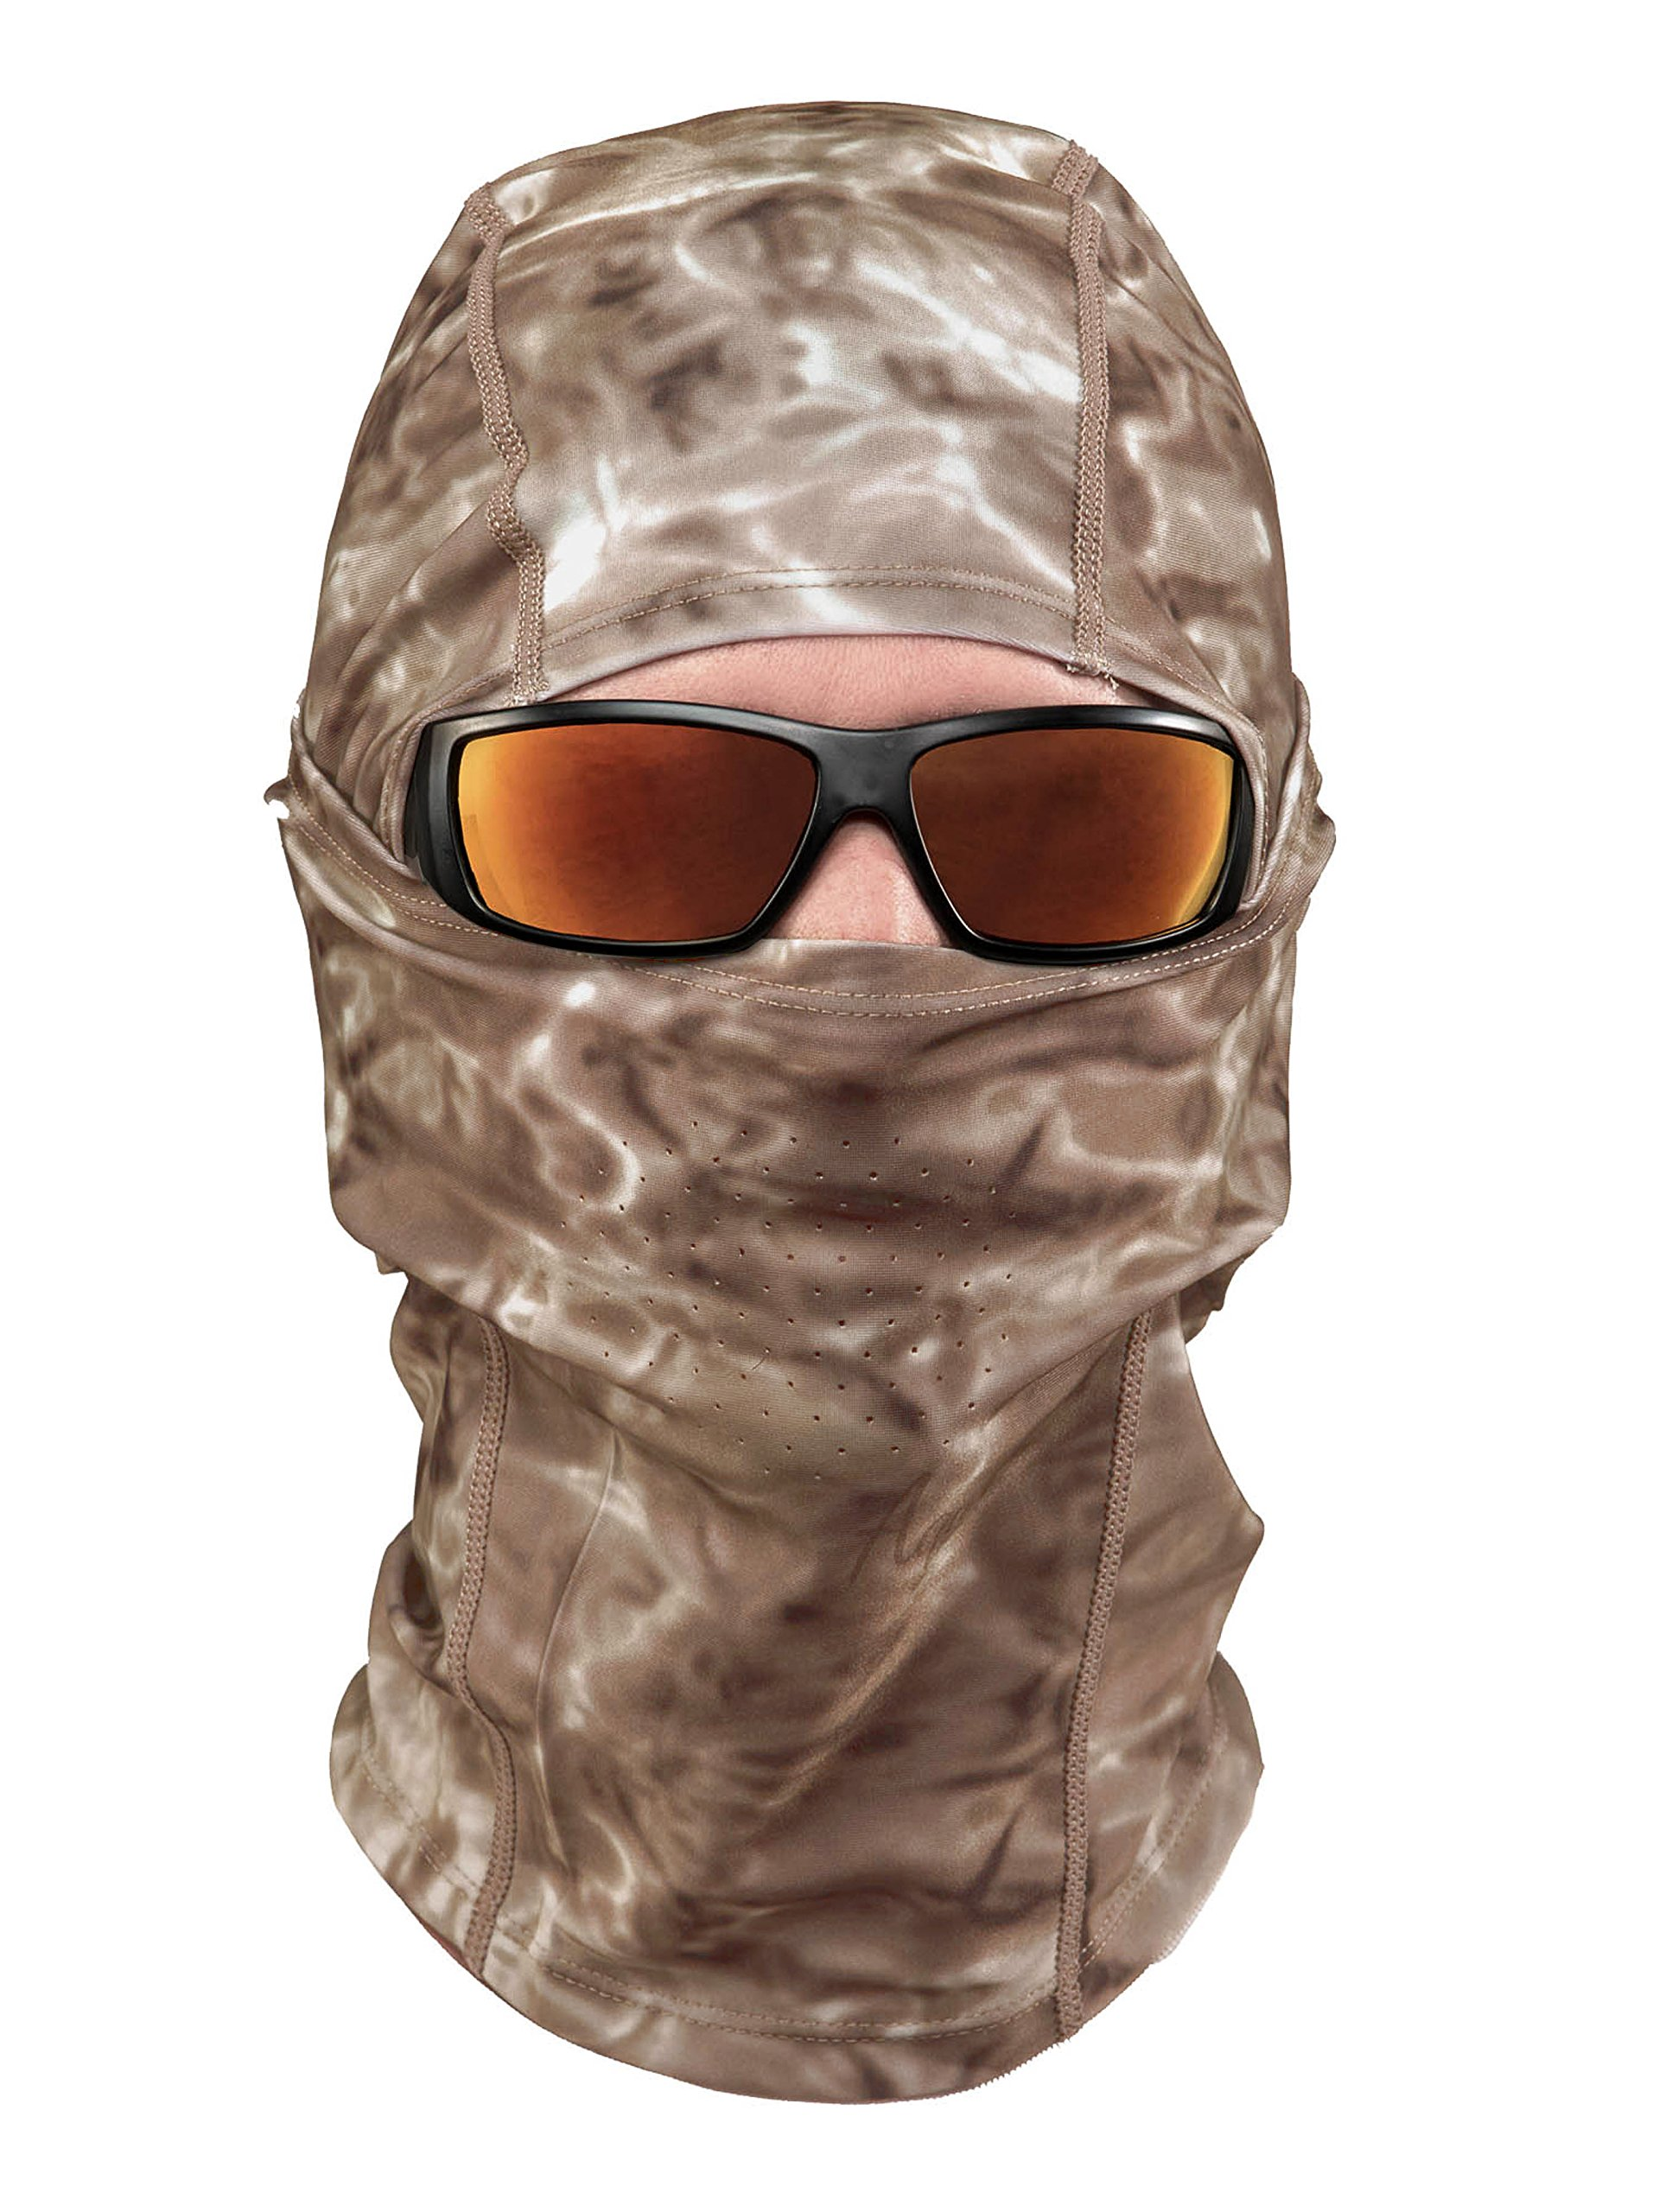 Aqua Design: Cool Weather Mens Face Mask UPF50+ Sun Wind Helmet Liner Balaclava: Pacific Sand by Aqua Design (Image #2)